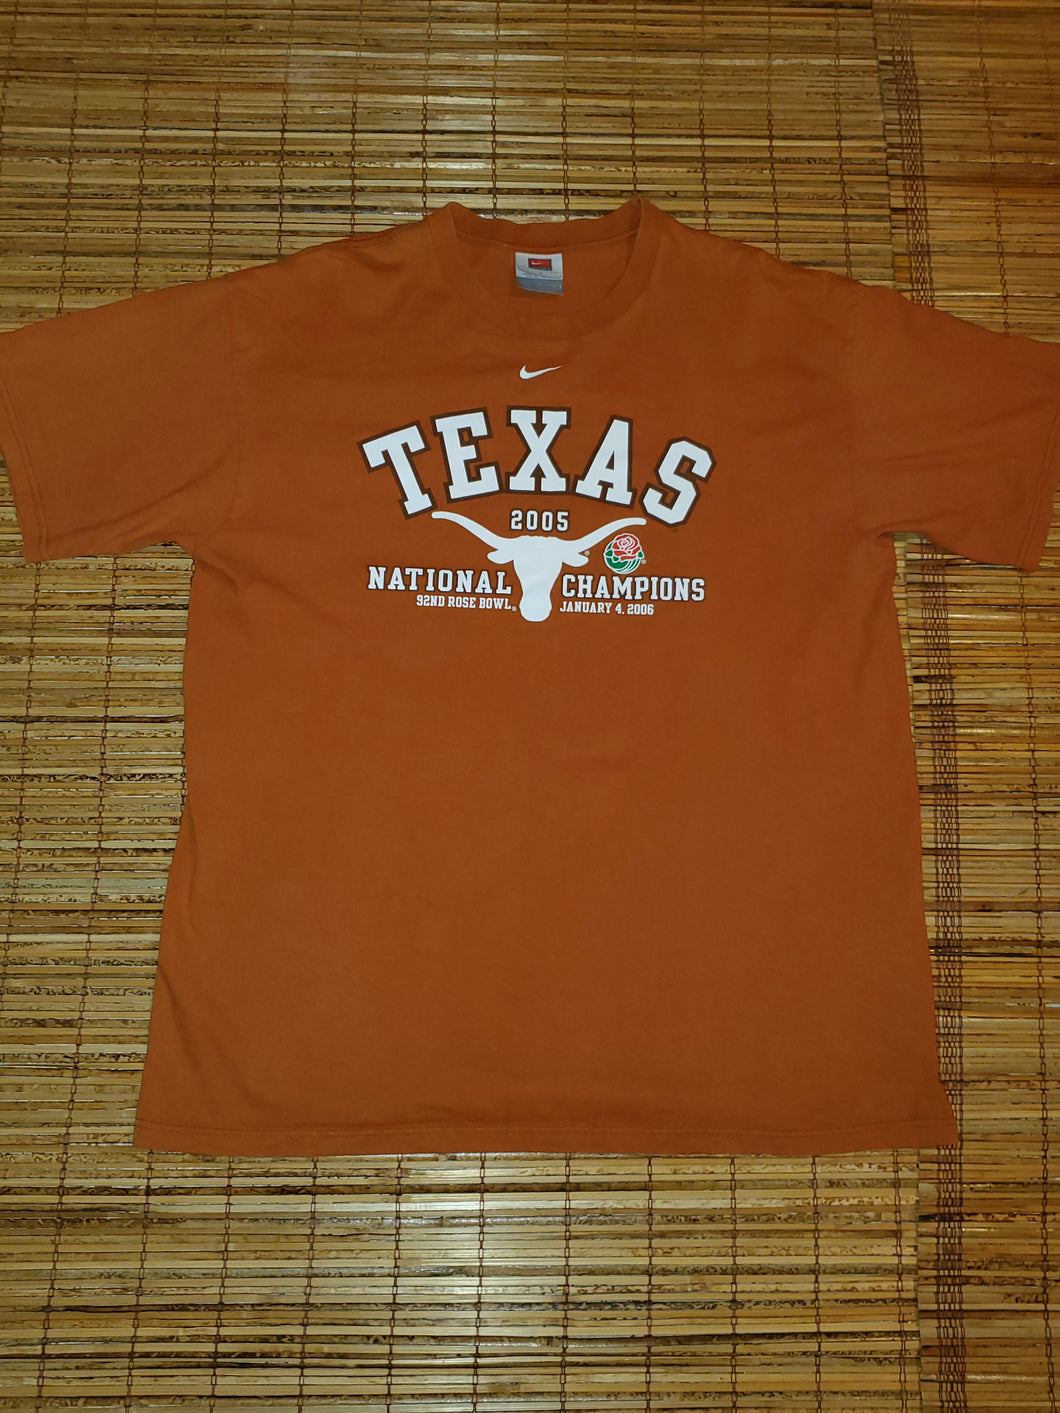 L - Nike Texas Longhorns 2005 Shirt